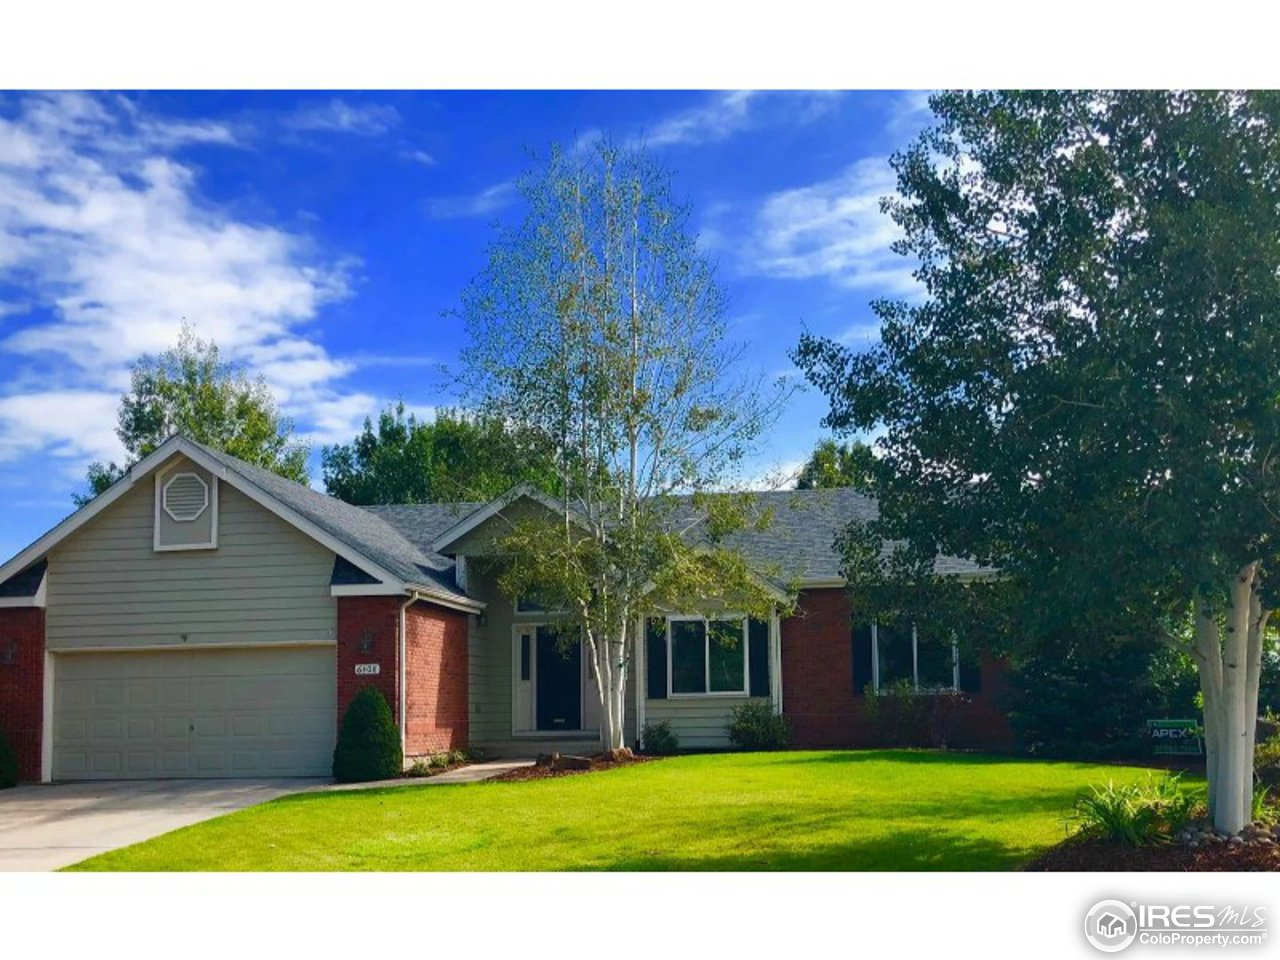 6408 Buchanan Ct Loveland Home Listings - Team Cook Real Estate